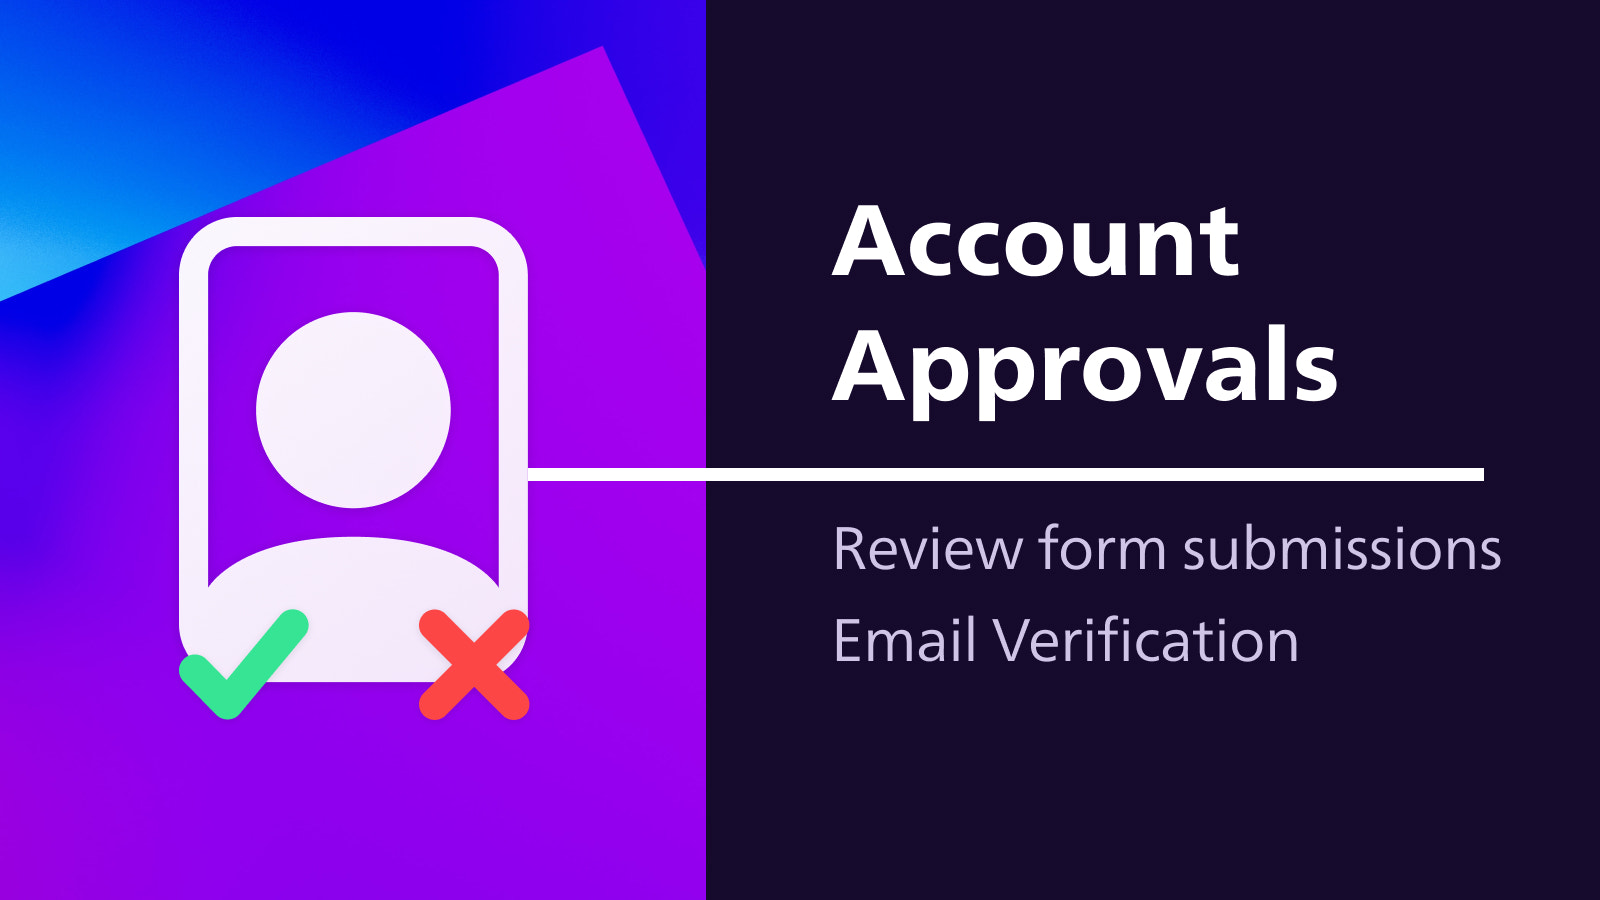 Approve or Deny Accounts & require email verification